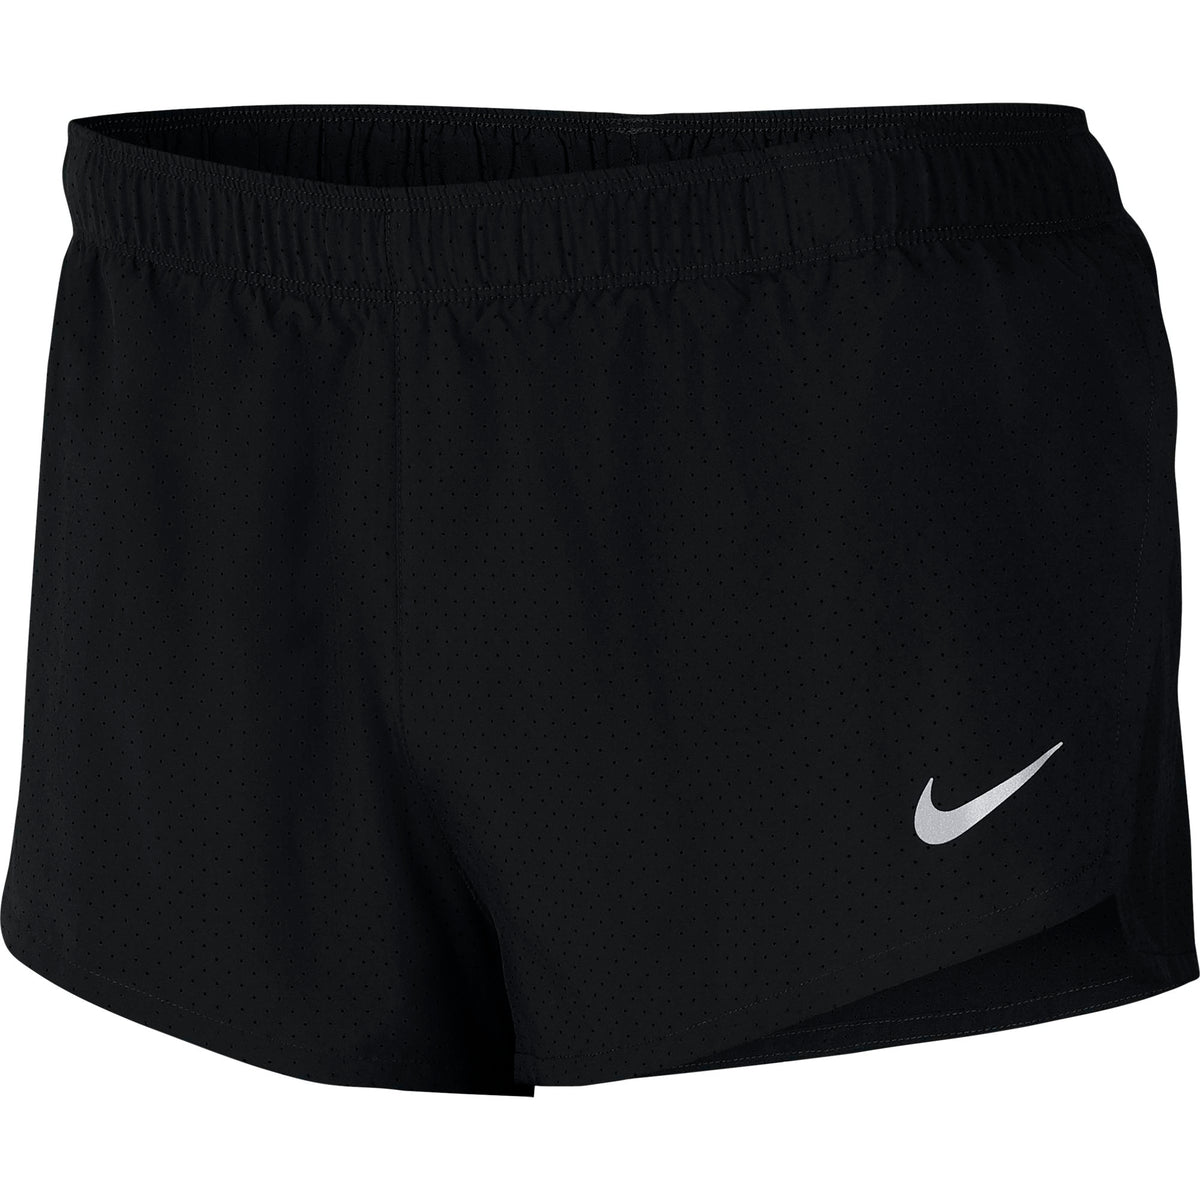 Nike Fast 2 Inch Running Shorts Mens